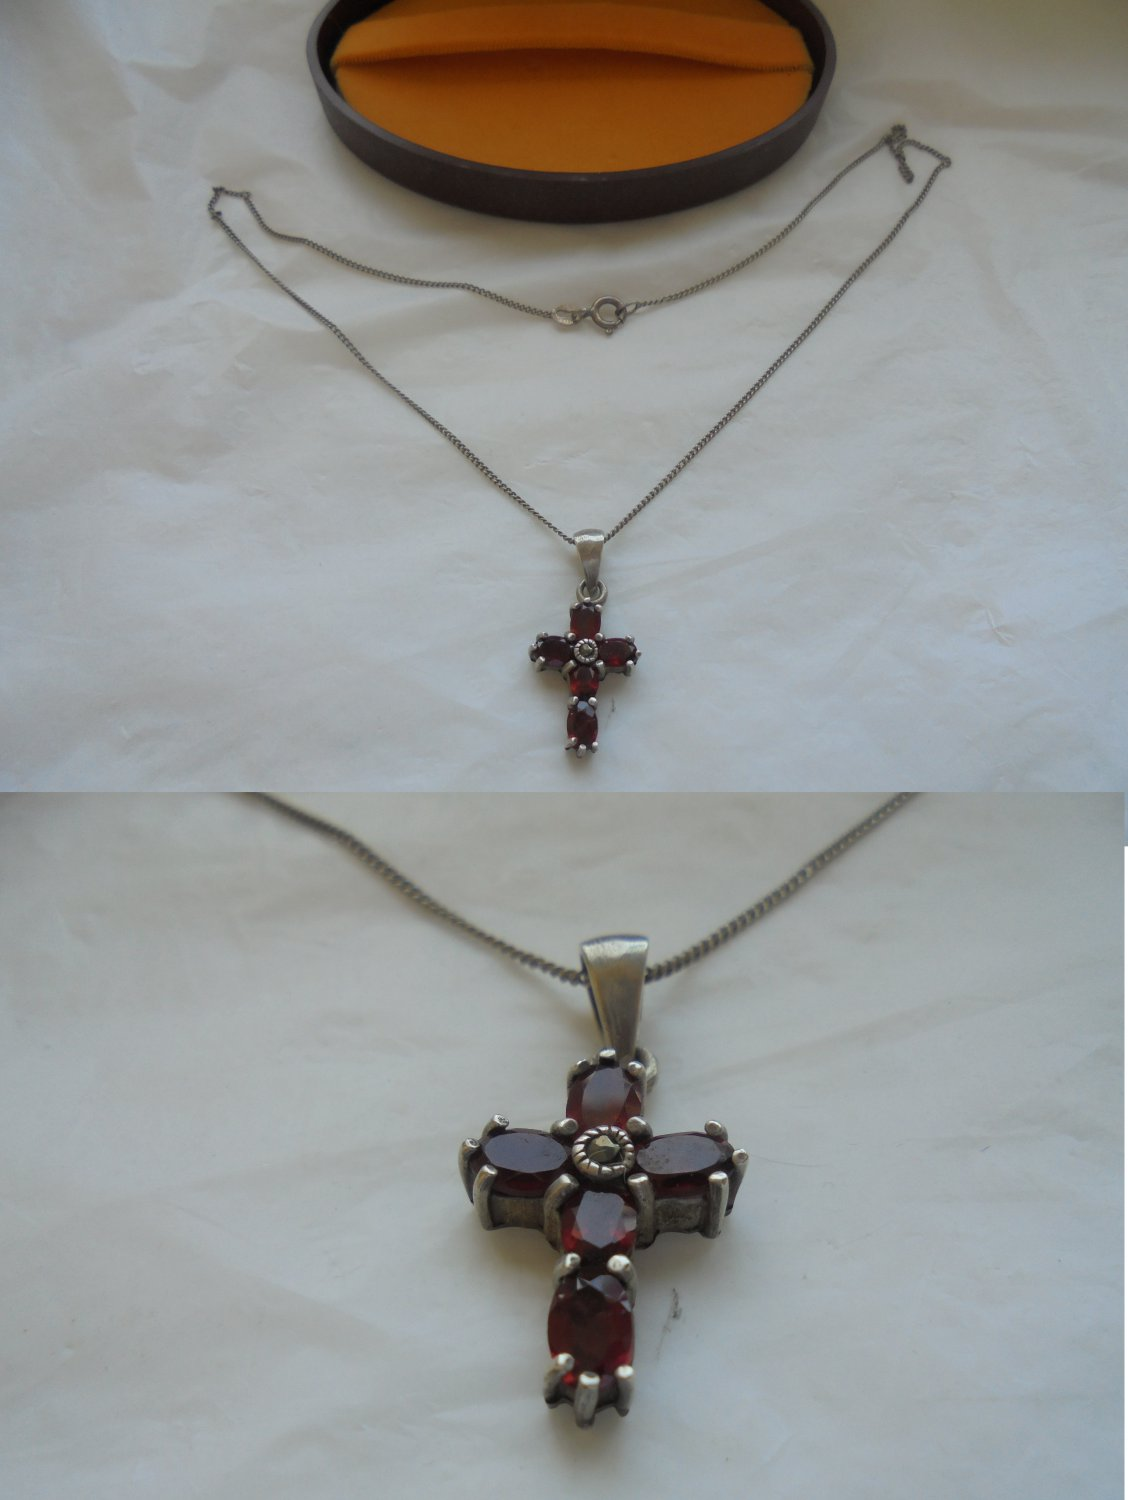 NECKLACE chain with CROSS in silver 925 and with RUBIES Original in gift box 1970s